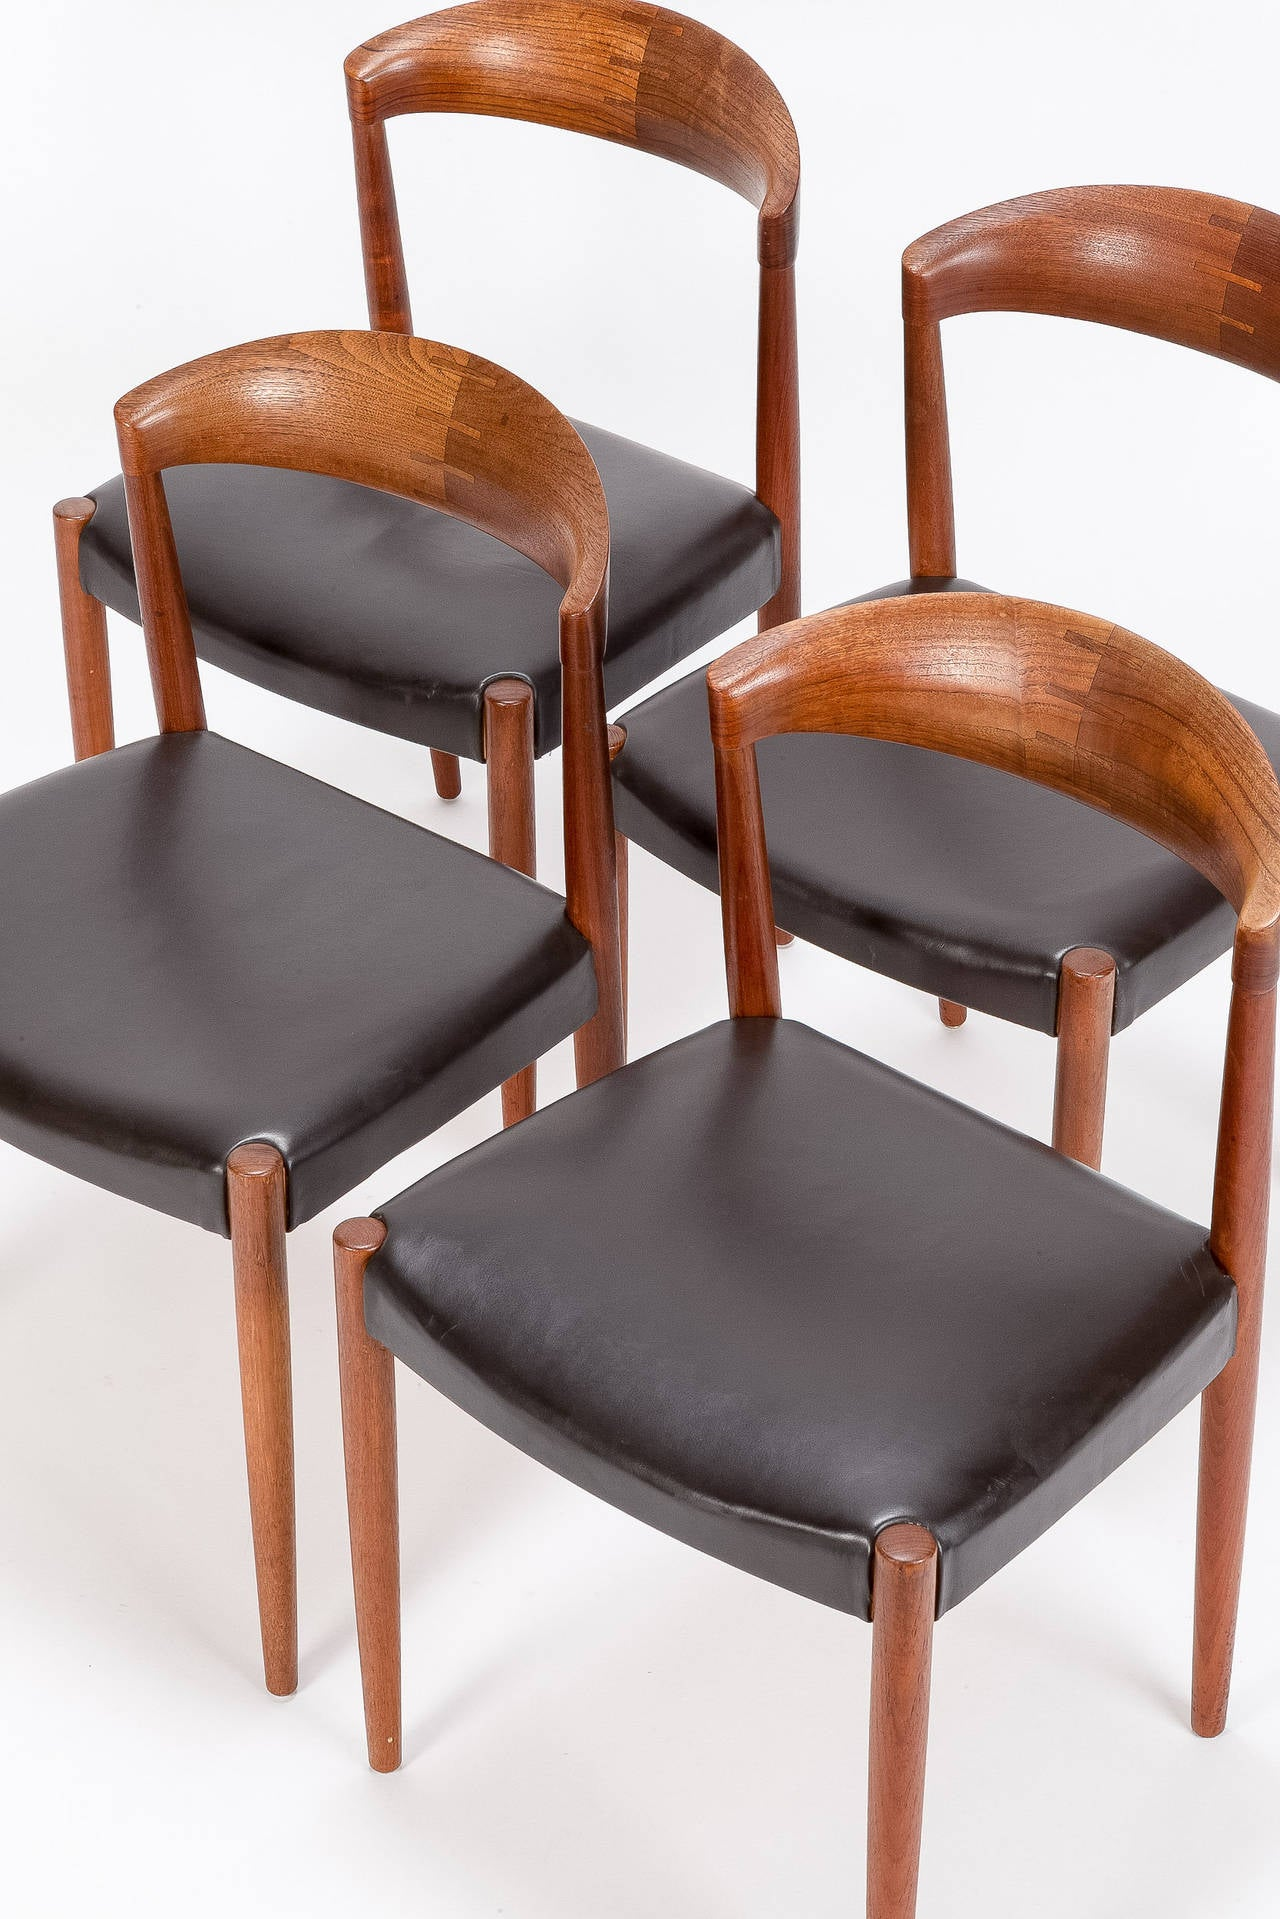 Four Danish Teak and Leather Chairs by Knud Andersen 1960s For